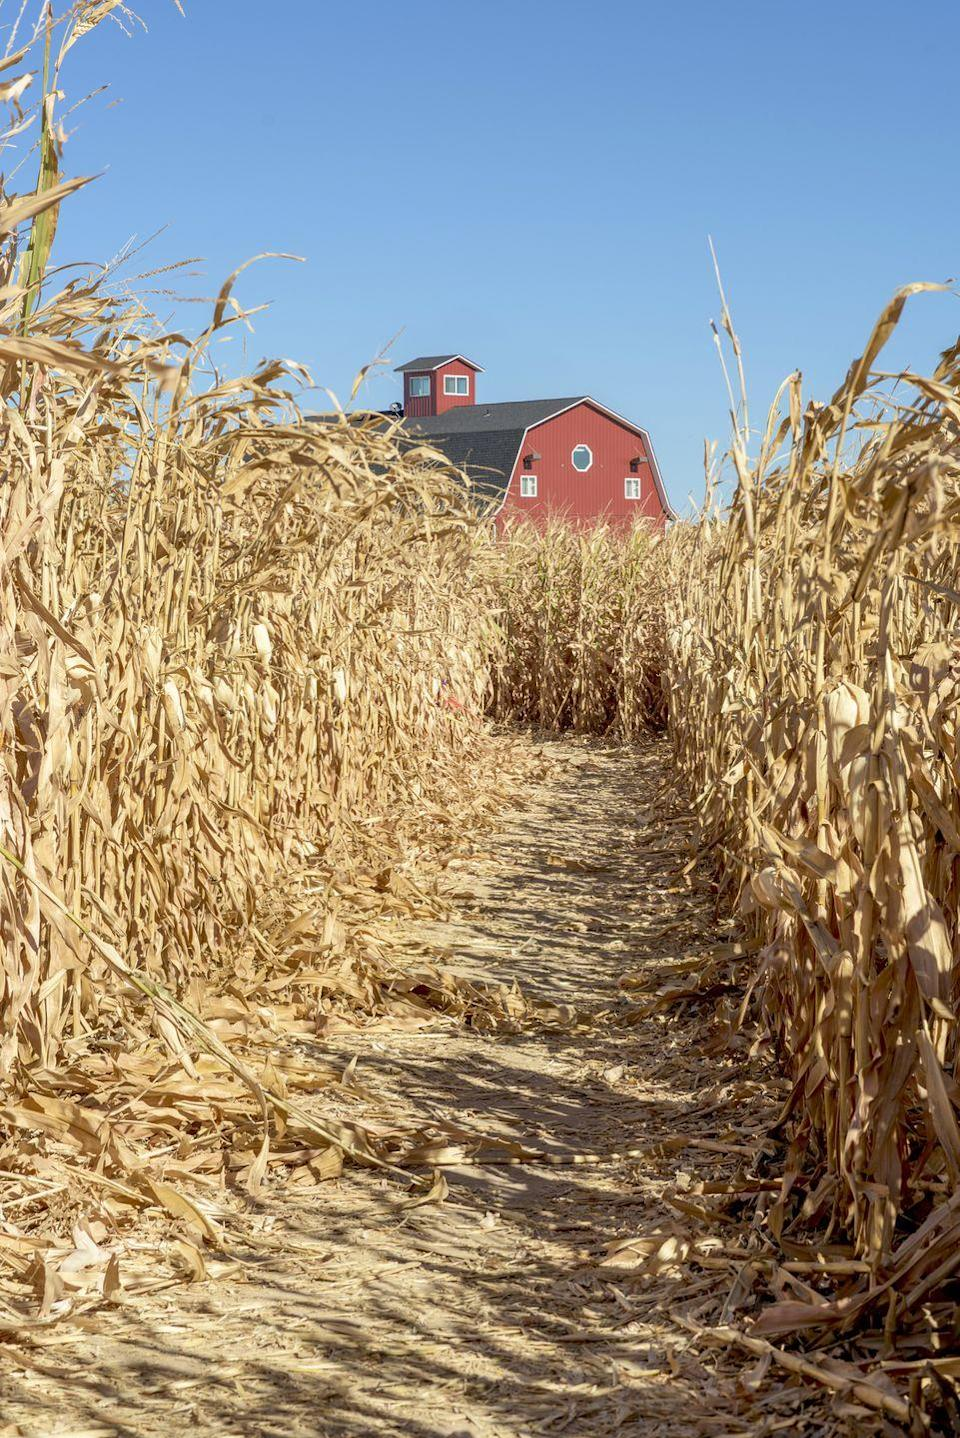 <p>Whether a haunted maze designed to inspire fearful-shrieks or a family-friendly one sure to delight, there's no shortage of corn mazes across America in the fall. The best ones are adjacent to autumn festivals with games, rides, and food, so give yourself plenty of time to finish and enjoy!</p>